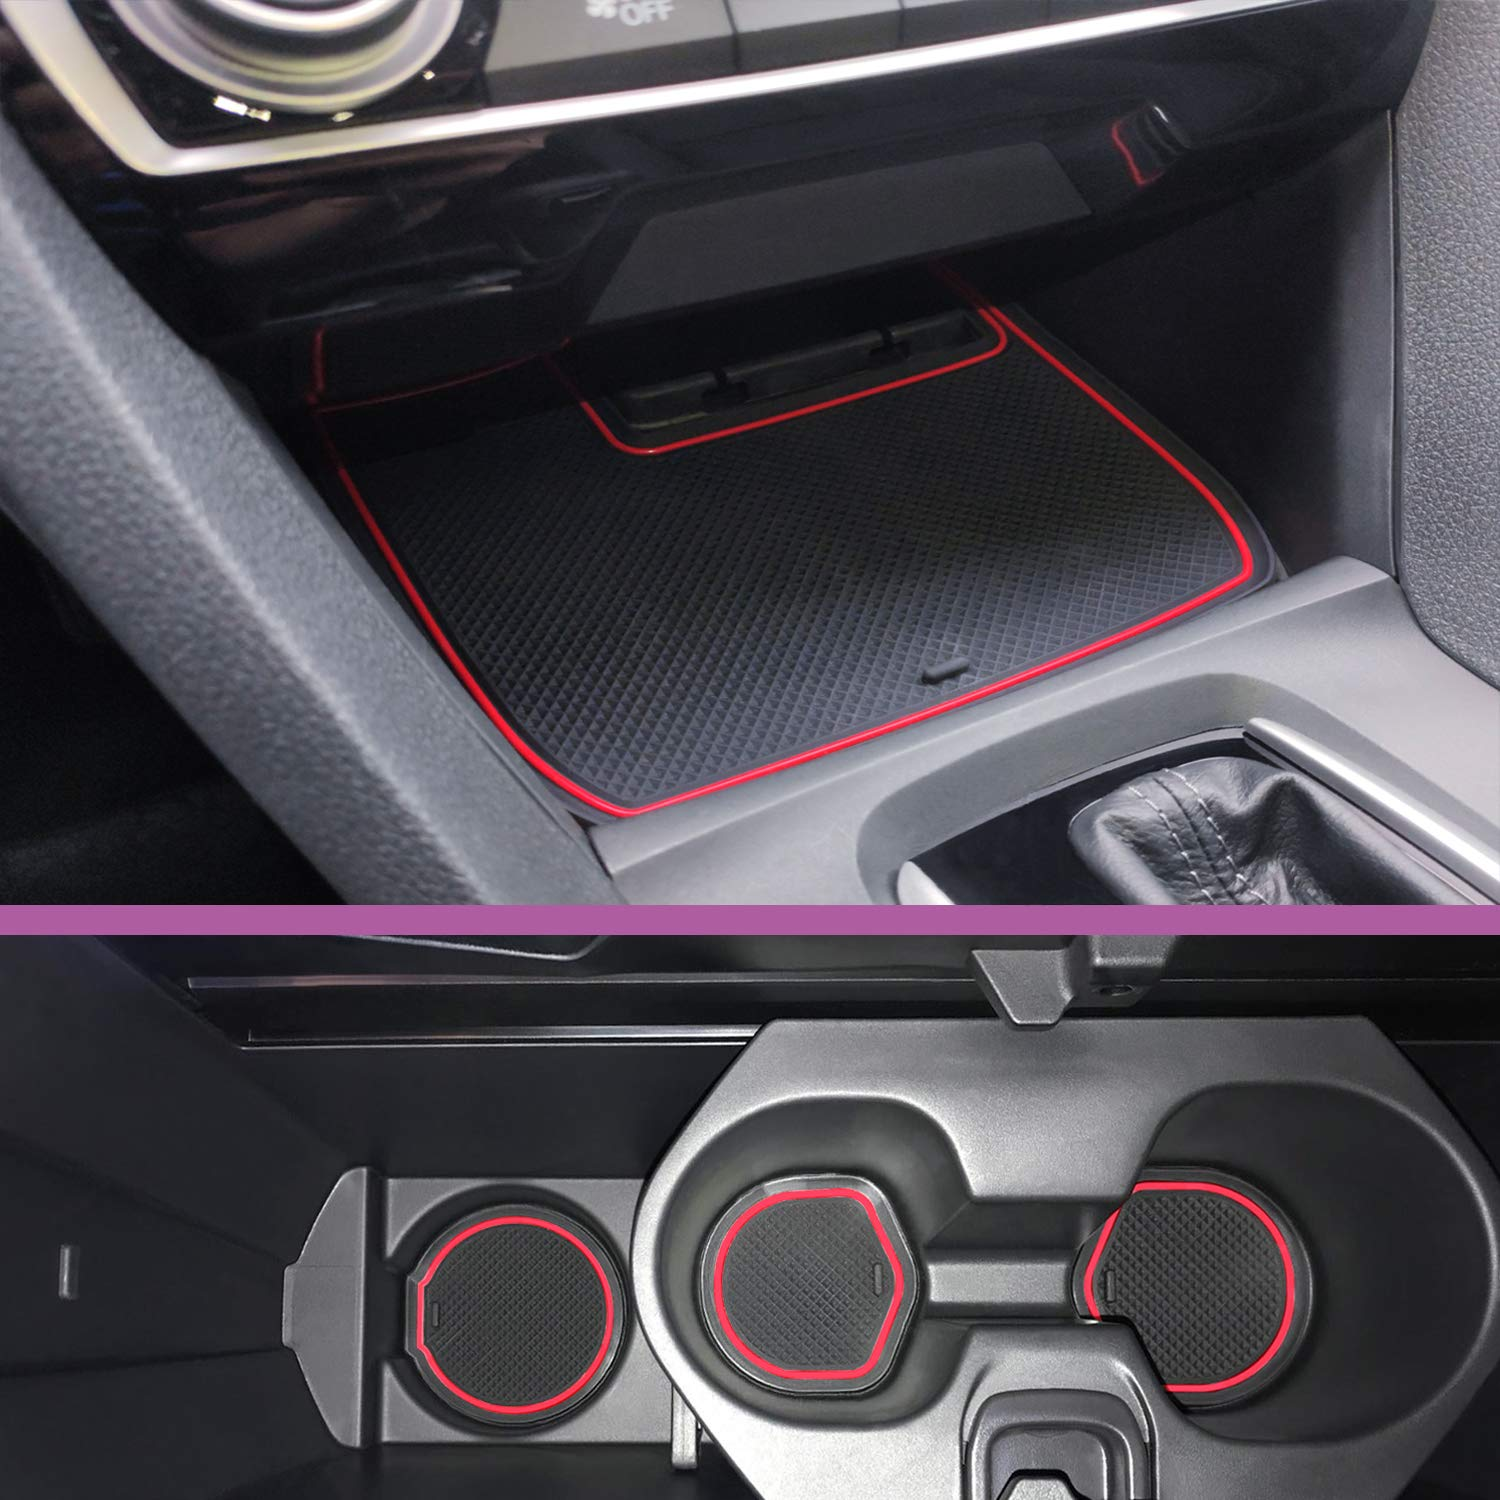 Center Console Liner Mats Coupe Blue Trim CupHolderHero for Honda Civic Accessories 2016-2020 Premium Custom Interior Non-Slip Anti Dust Cup Holder Inserts Door Pocket Liners 22-pc Set